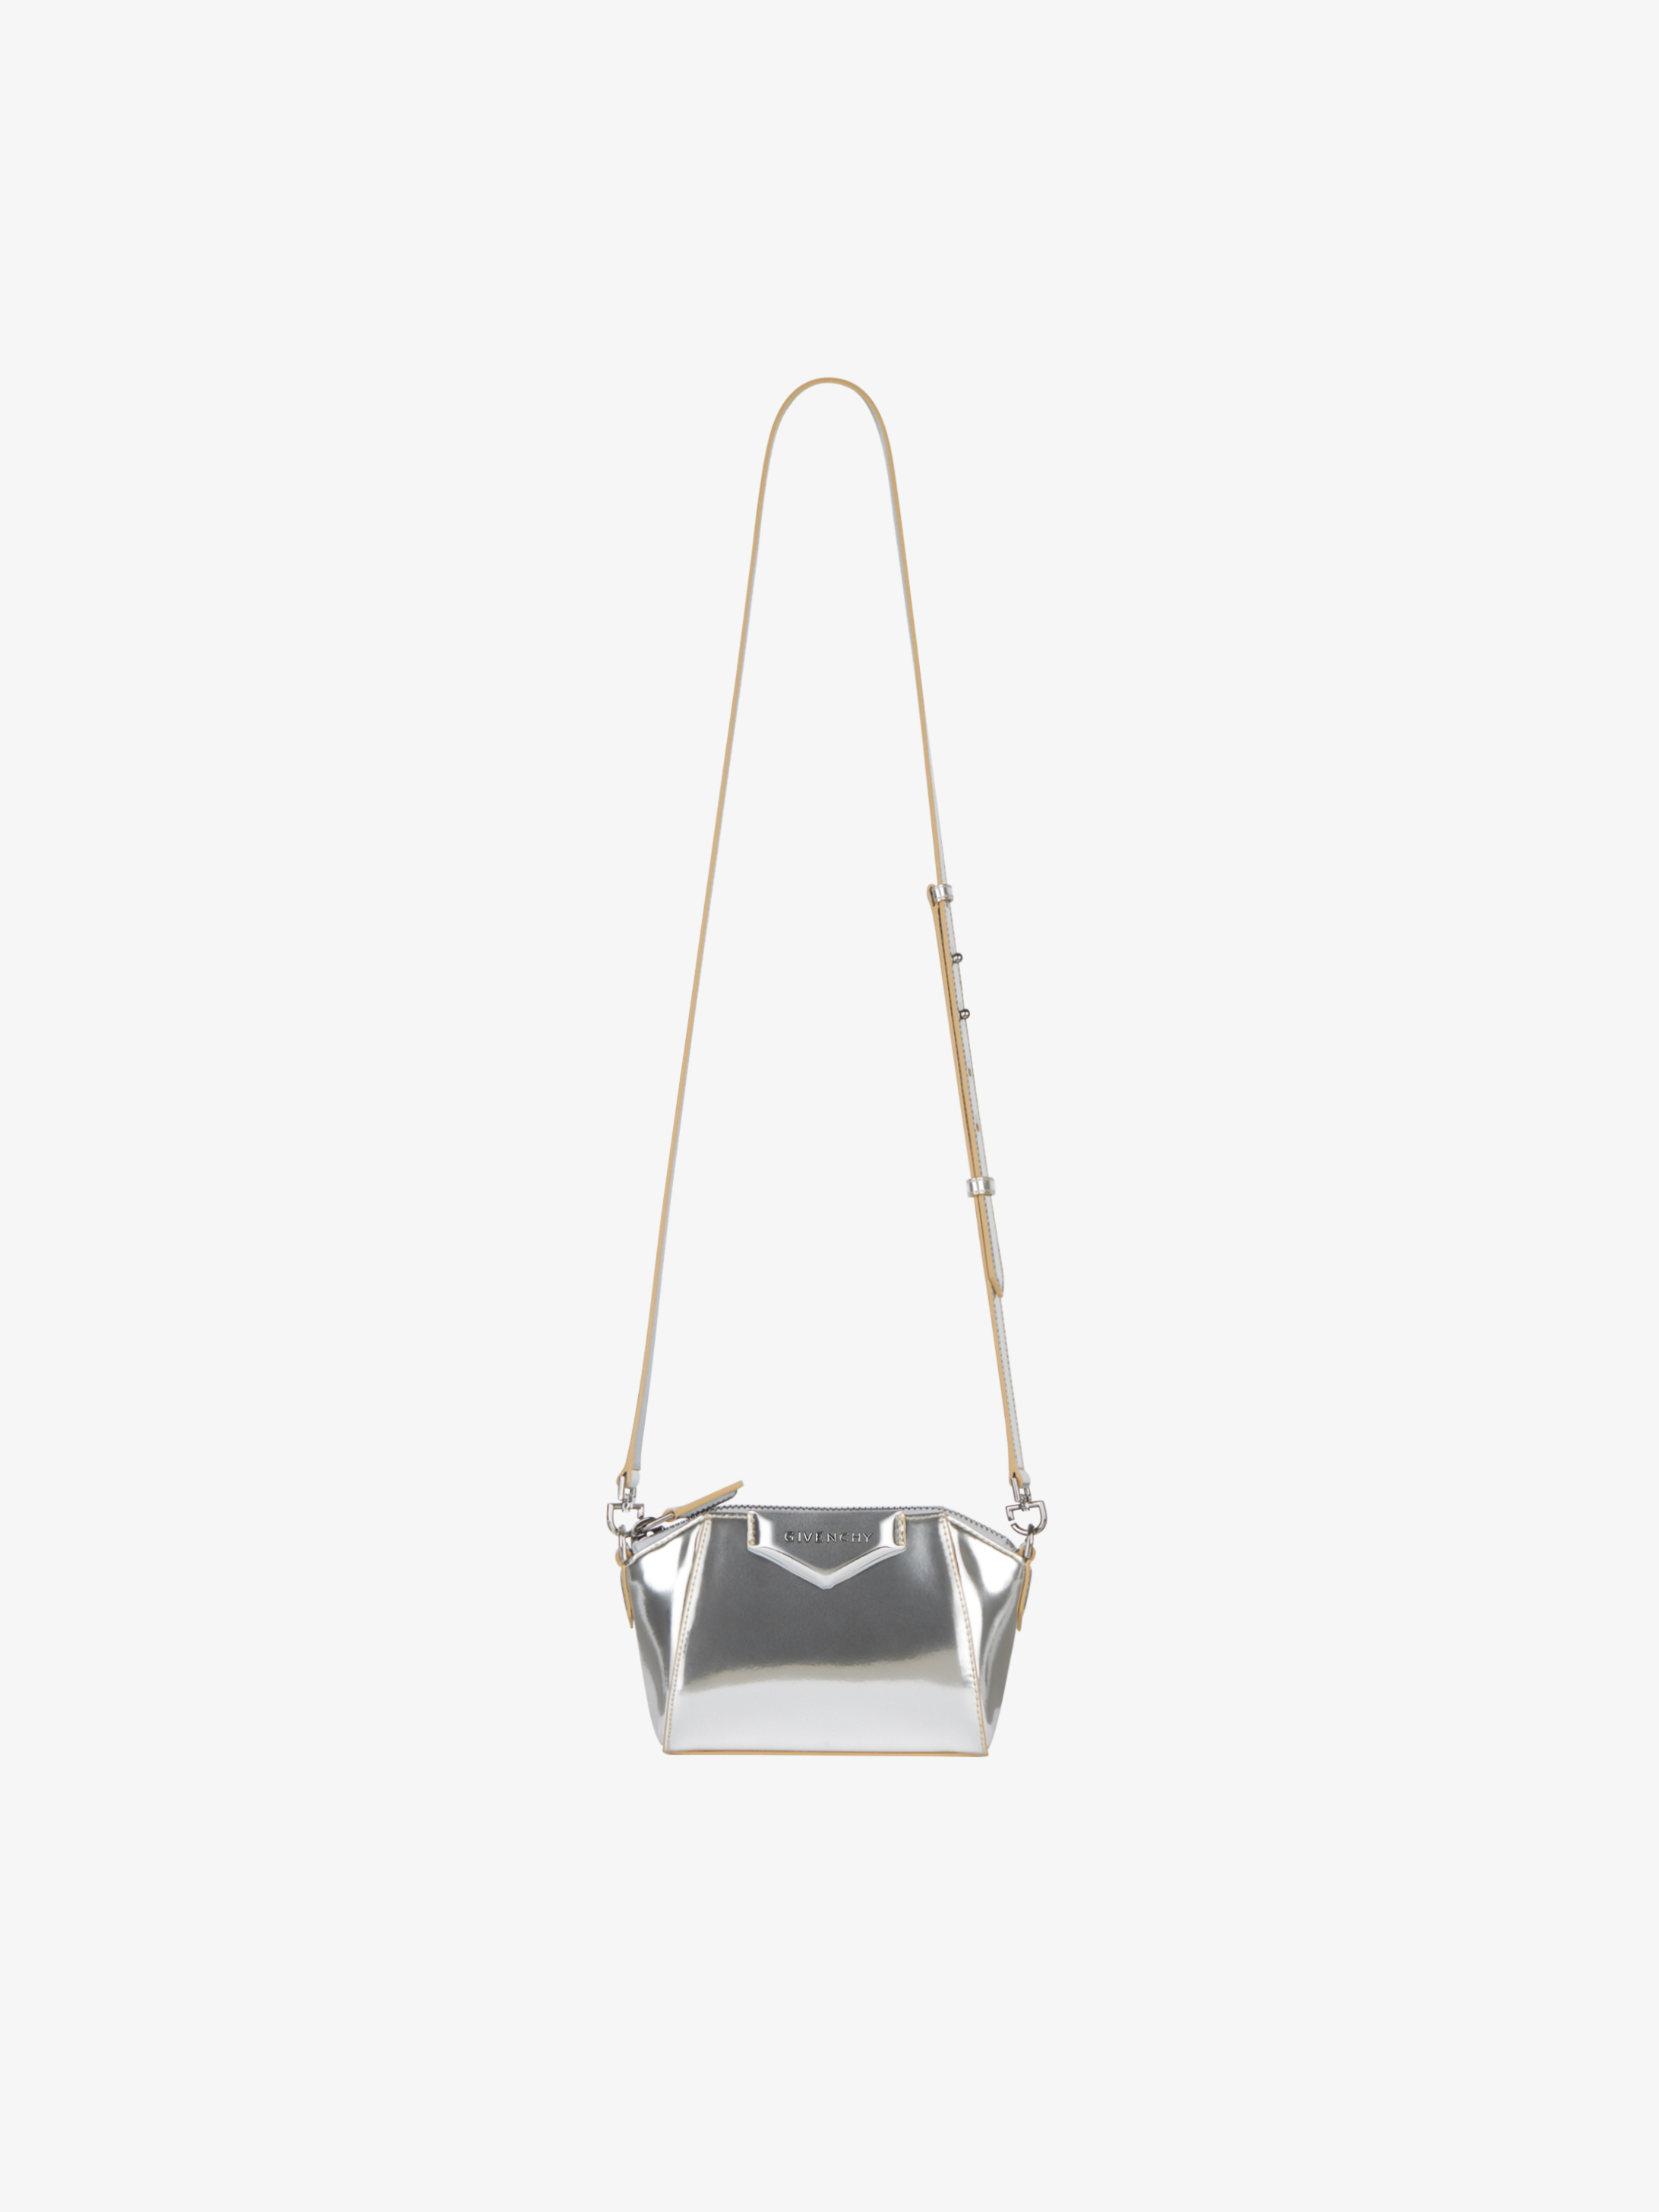 Nano Antigona bag in metalized leather